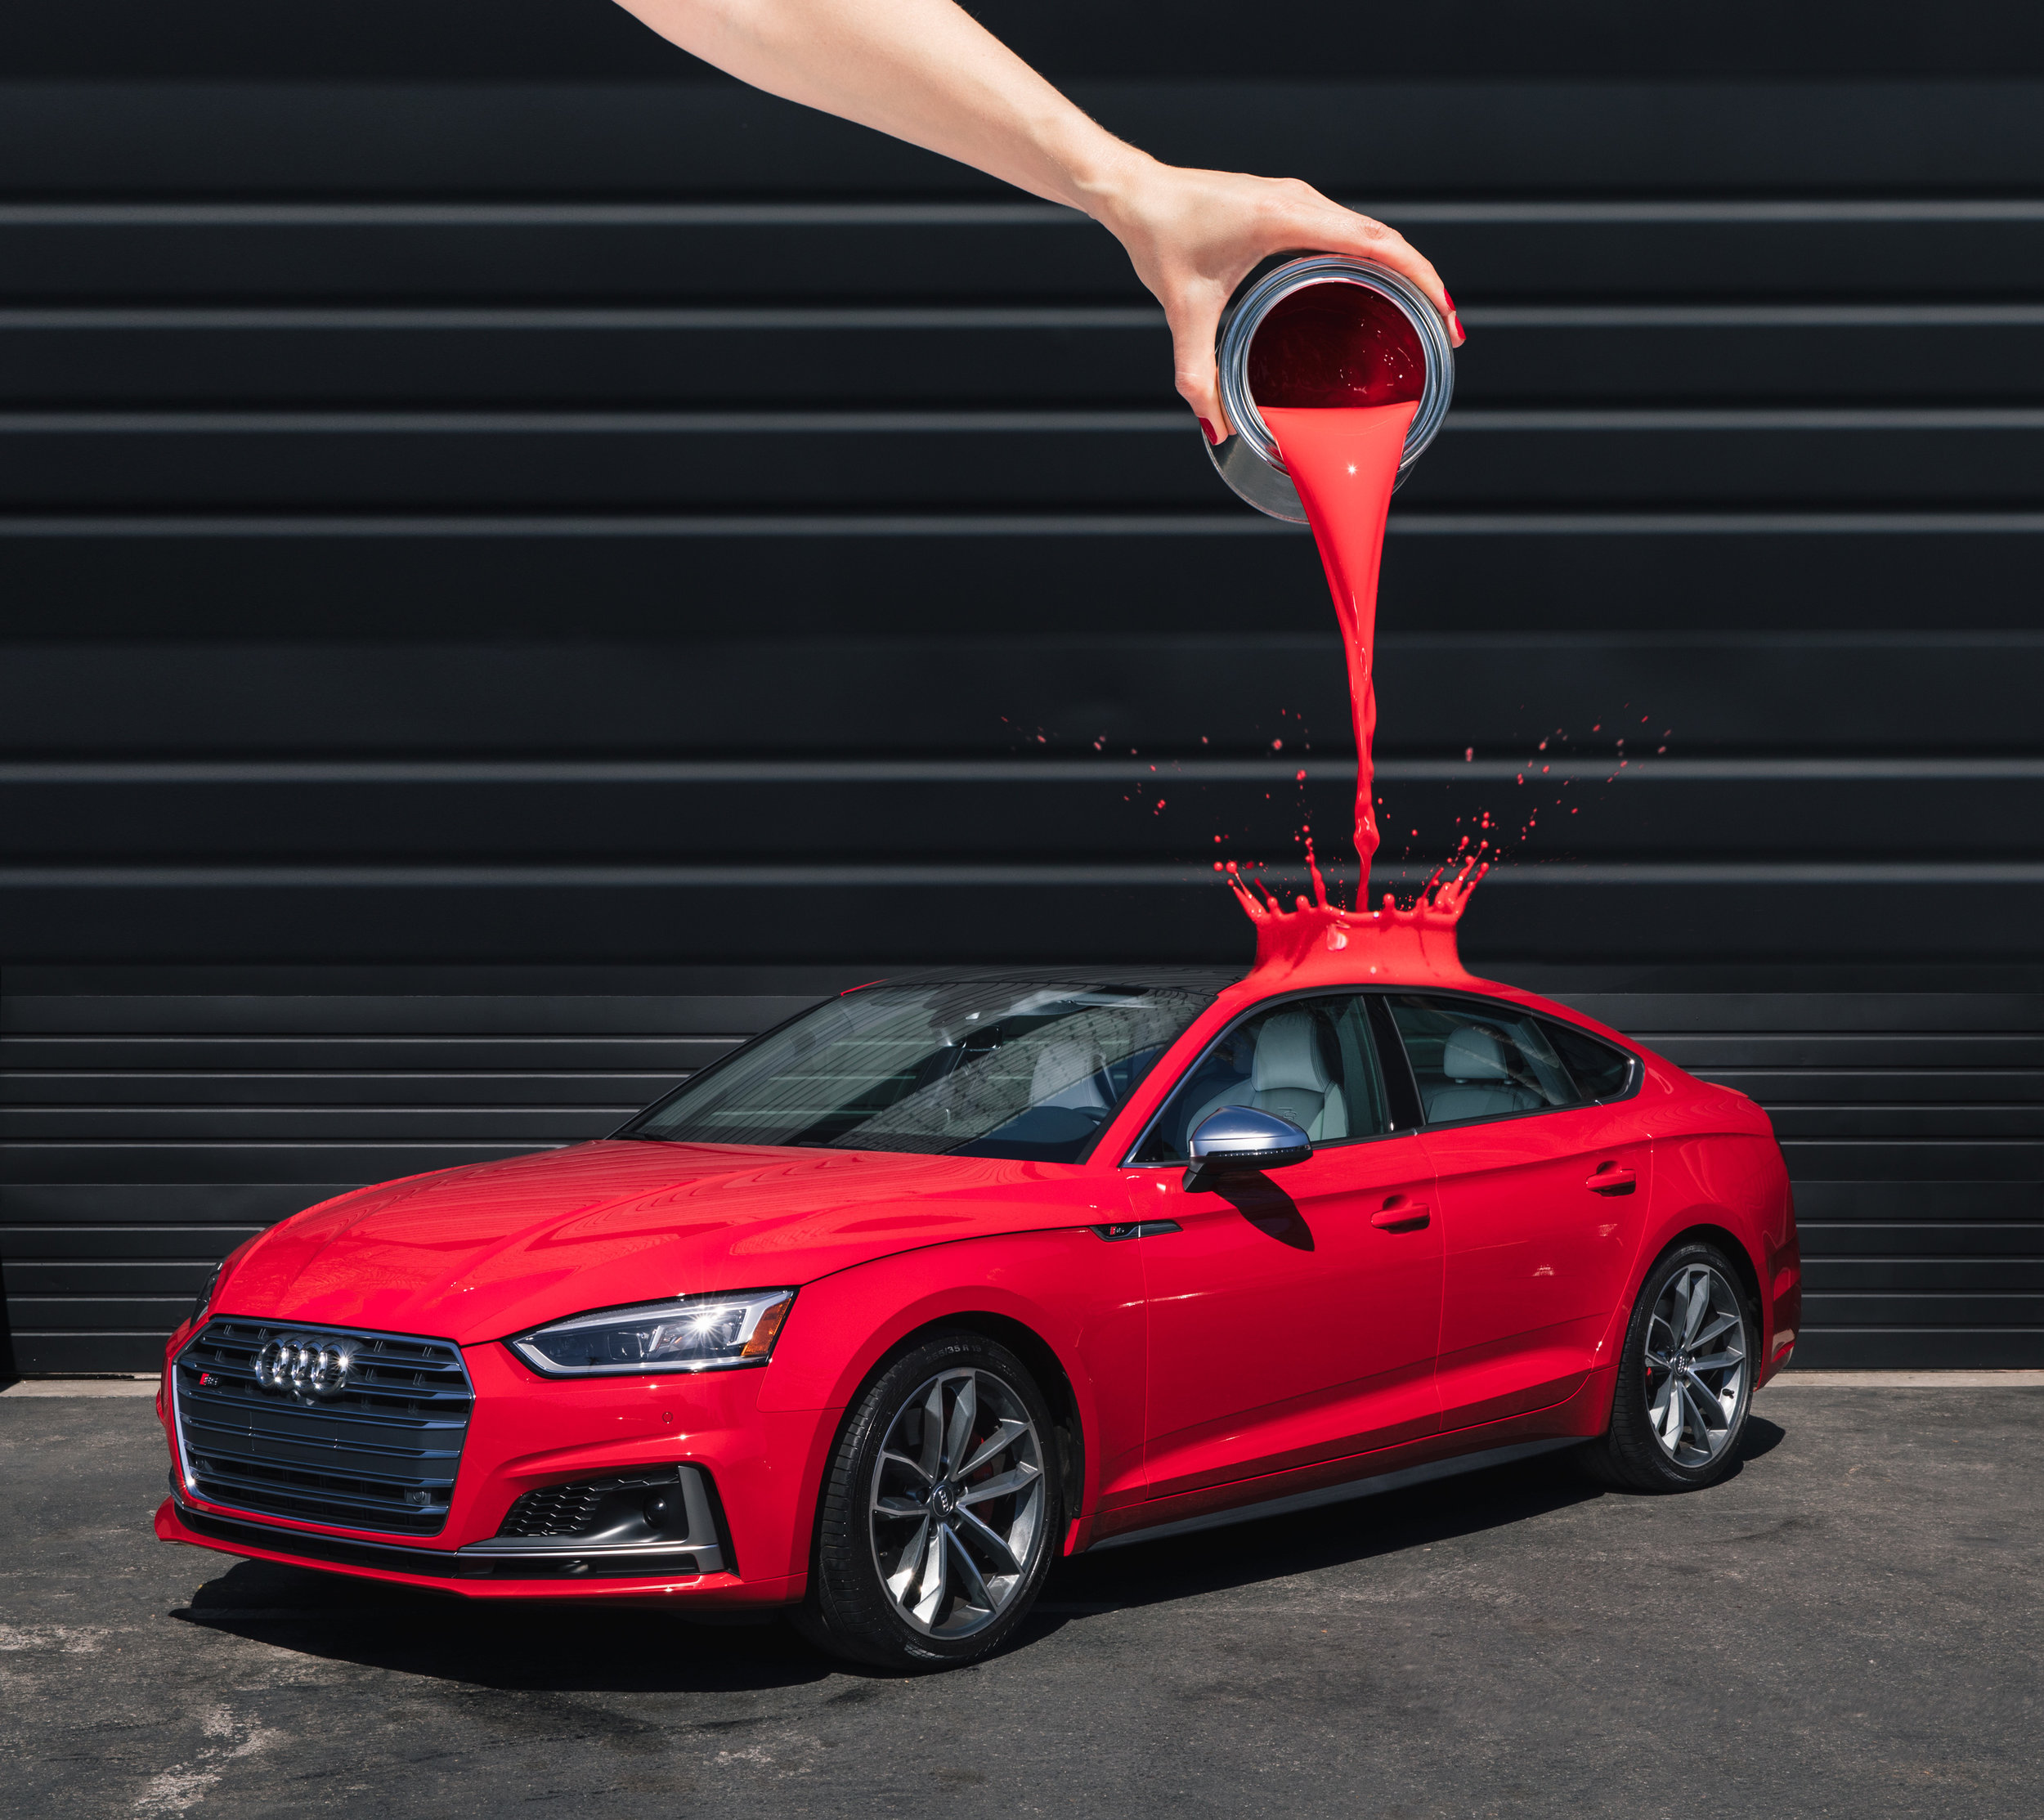 JZ_Audi_Illusion_Comp_v1.jpg